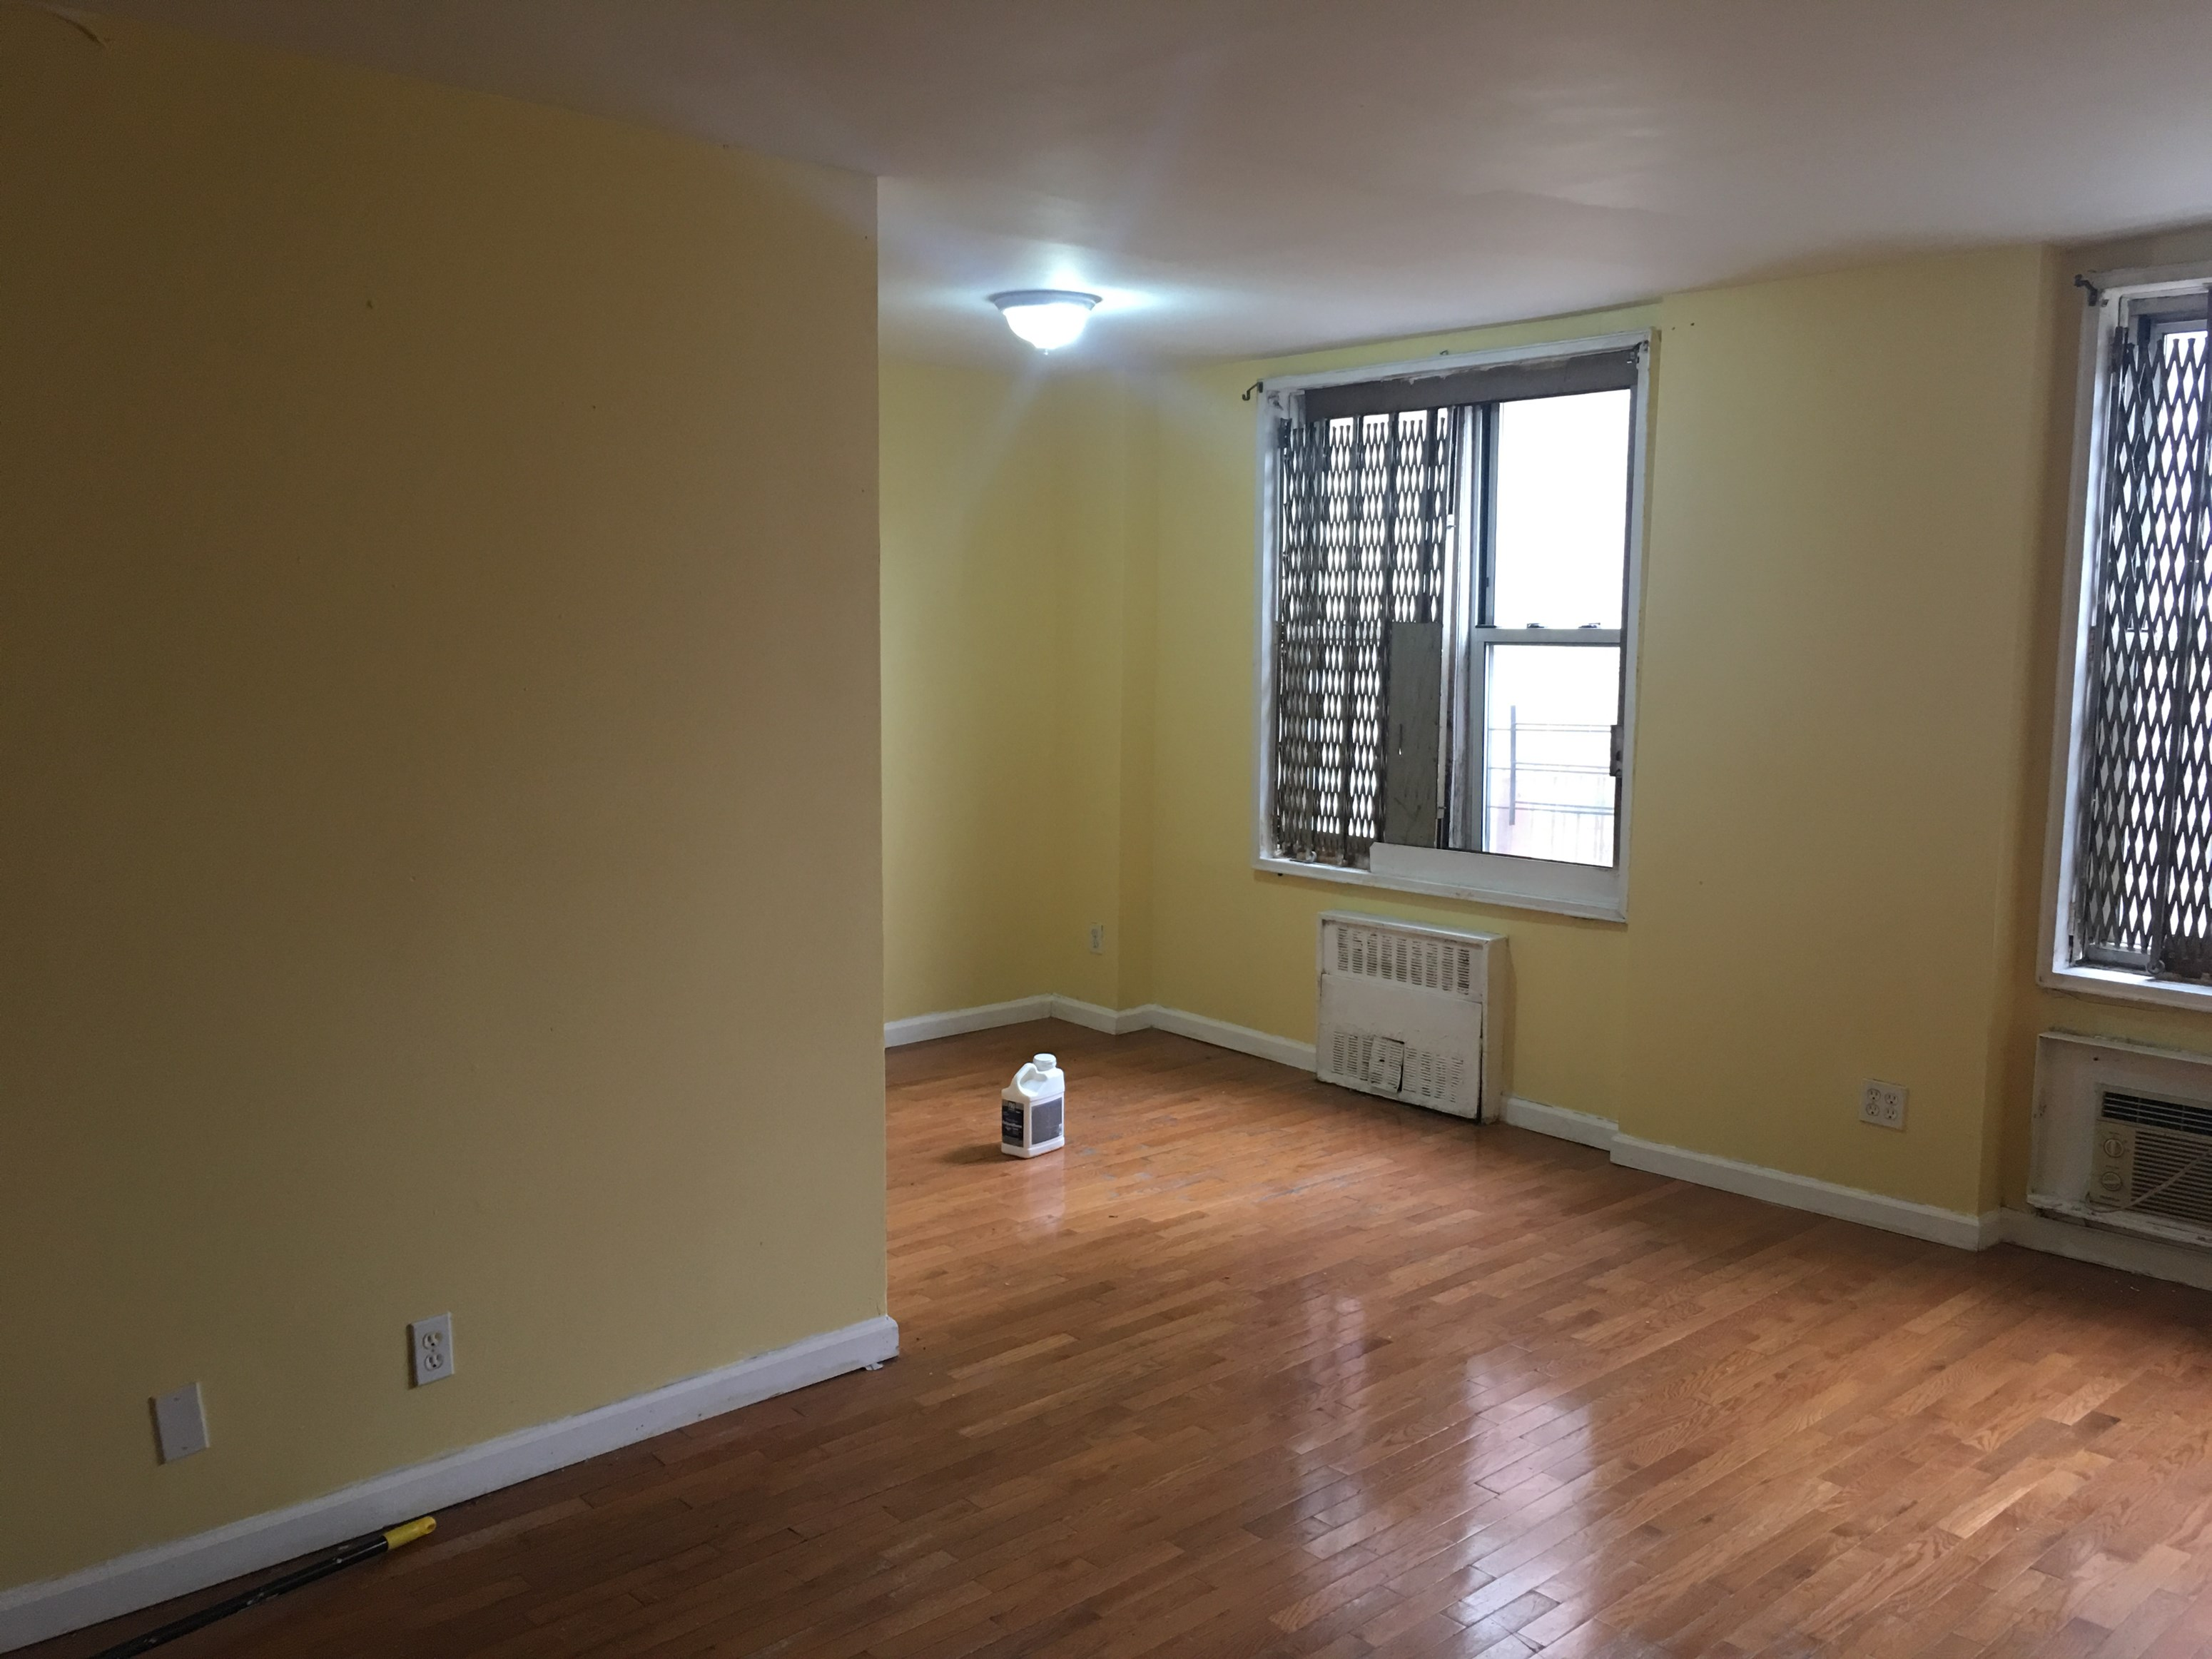 Offered Rooms for Rent in Elmhurst, NY – Rent a Houses, Home ...